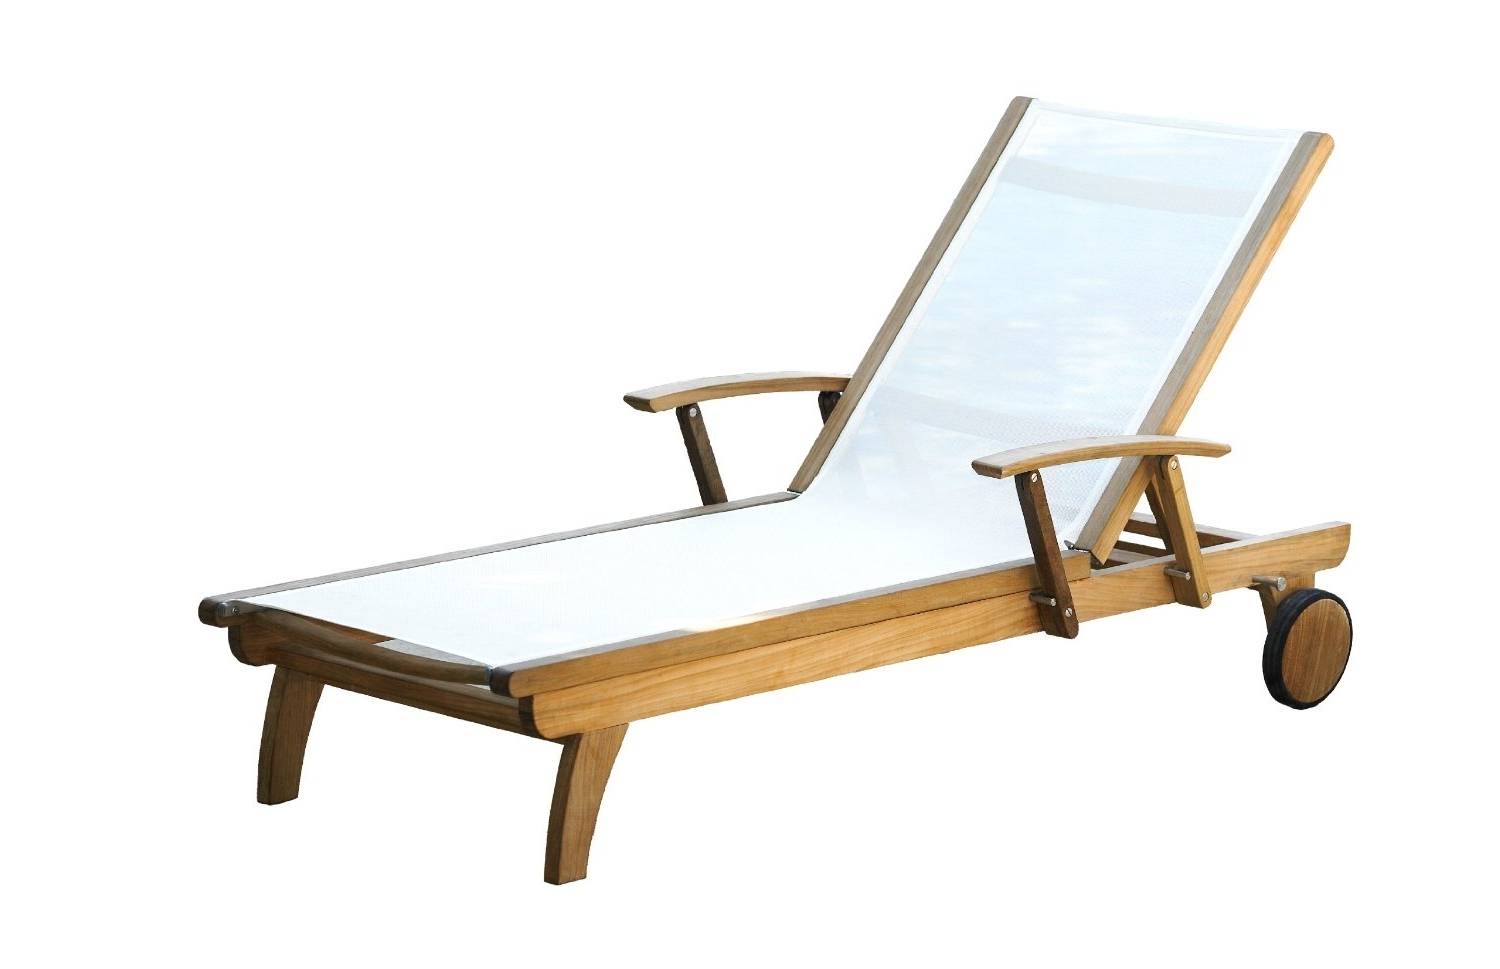 Outdoor Chaise Lounge Chairs With Arms Throughout Well Known Teak Chaise Lounge Chair – Teak Patio Furniture World (View 7 of 15)